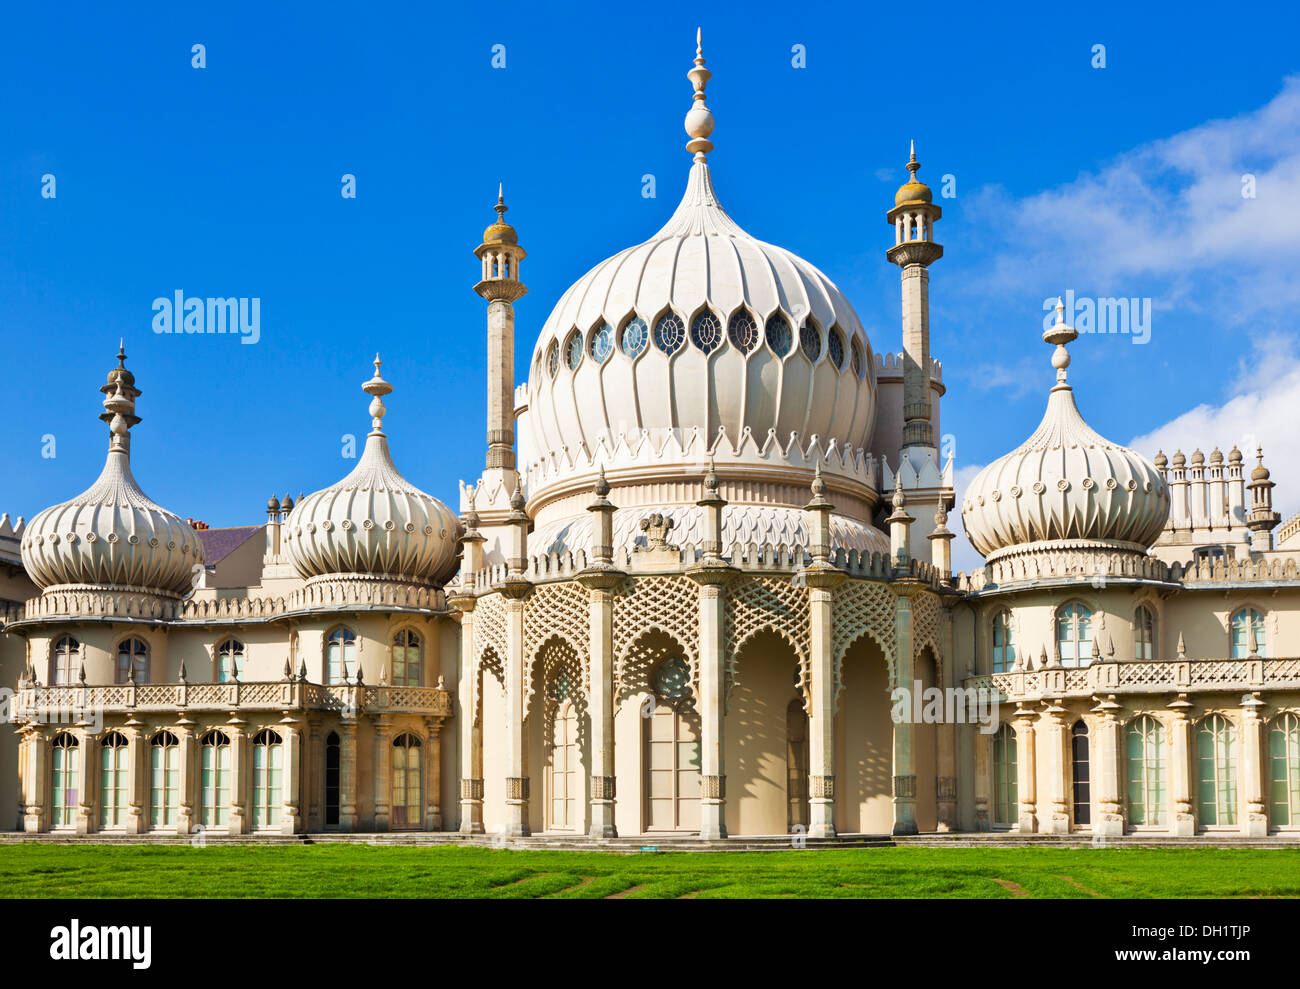 Brighton Pavillion Royal pavilion Brighton East Sussex England UK GB EU Europe - Stock Image